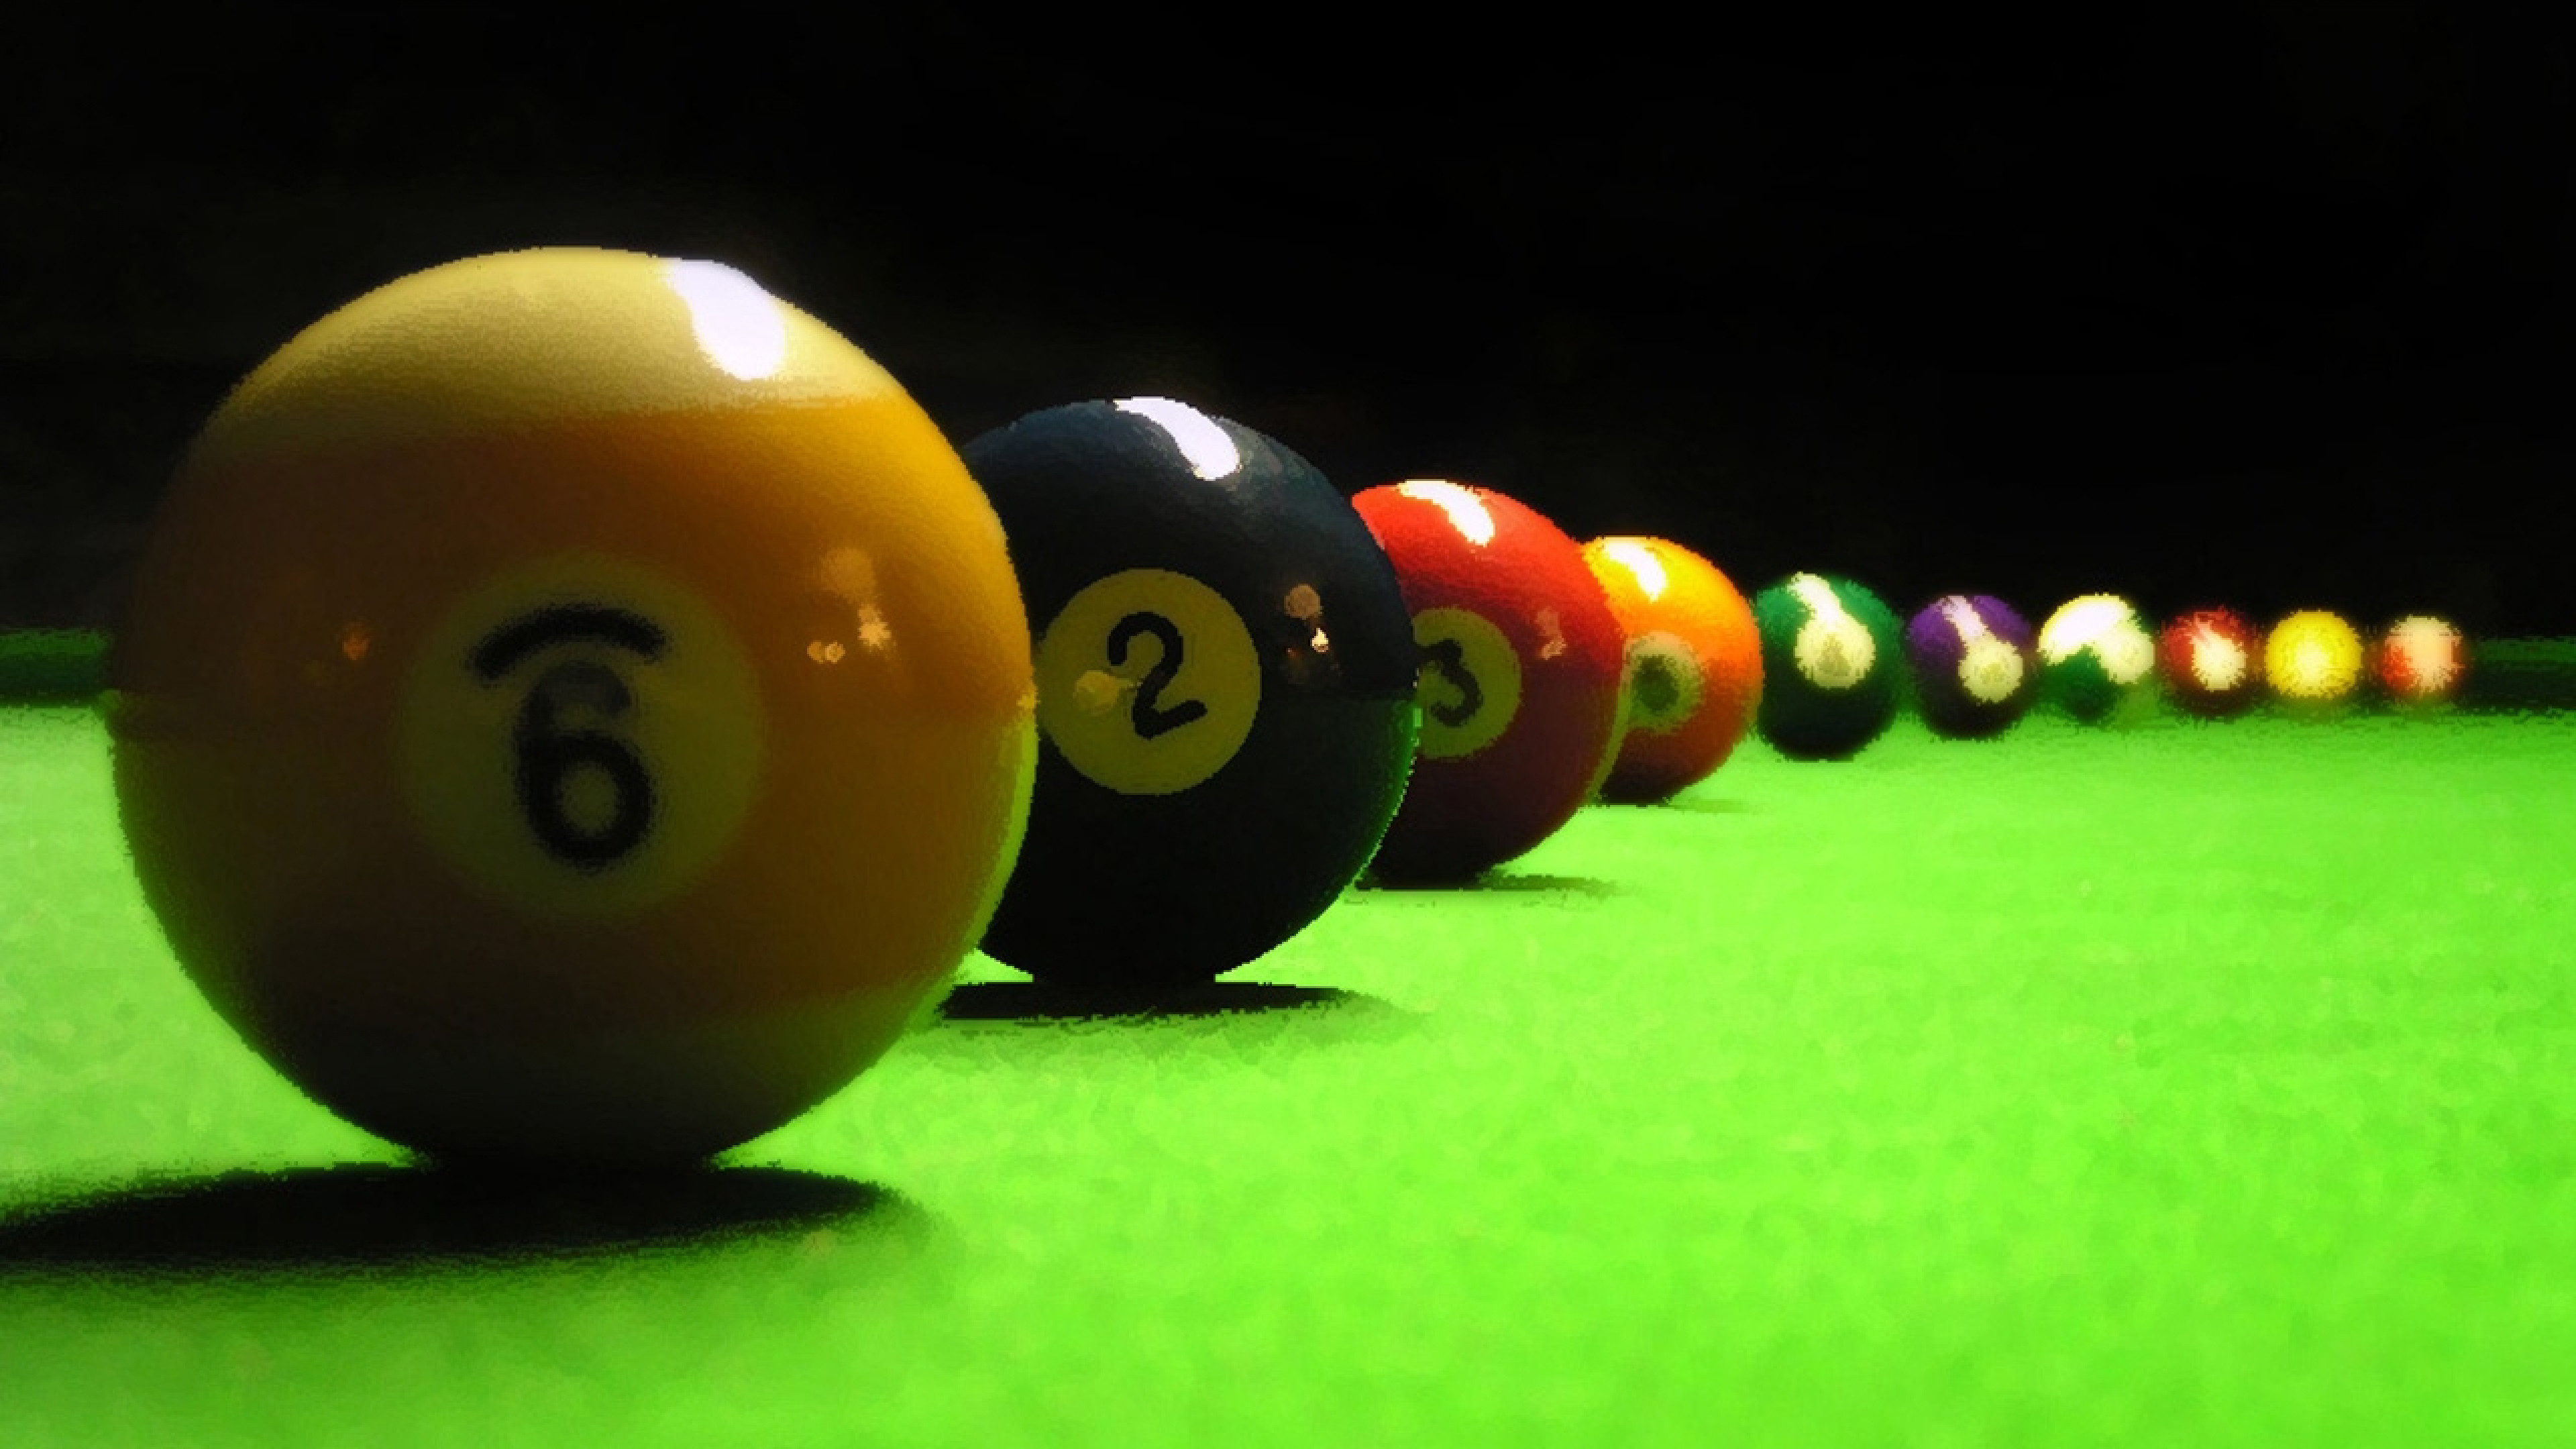 3840x2160  Wallpaper billiards, table, spheres, number, cloth, pool